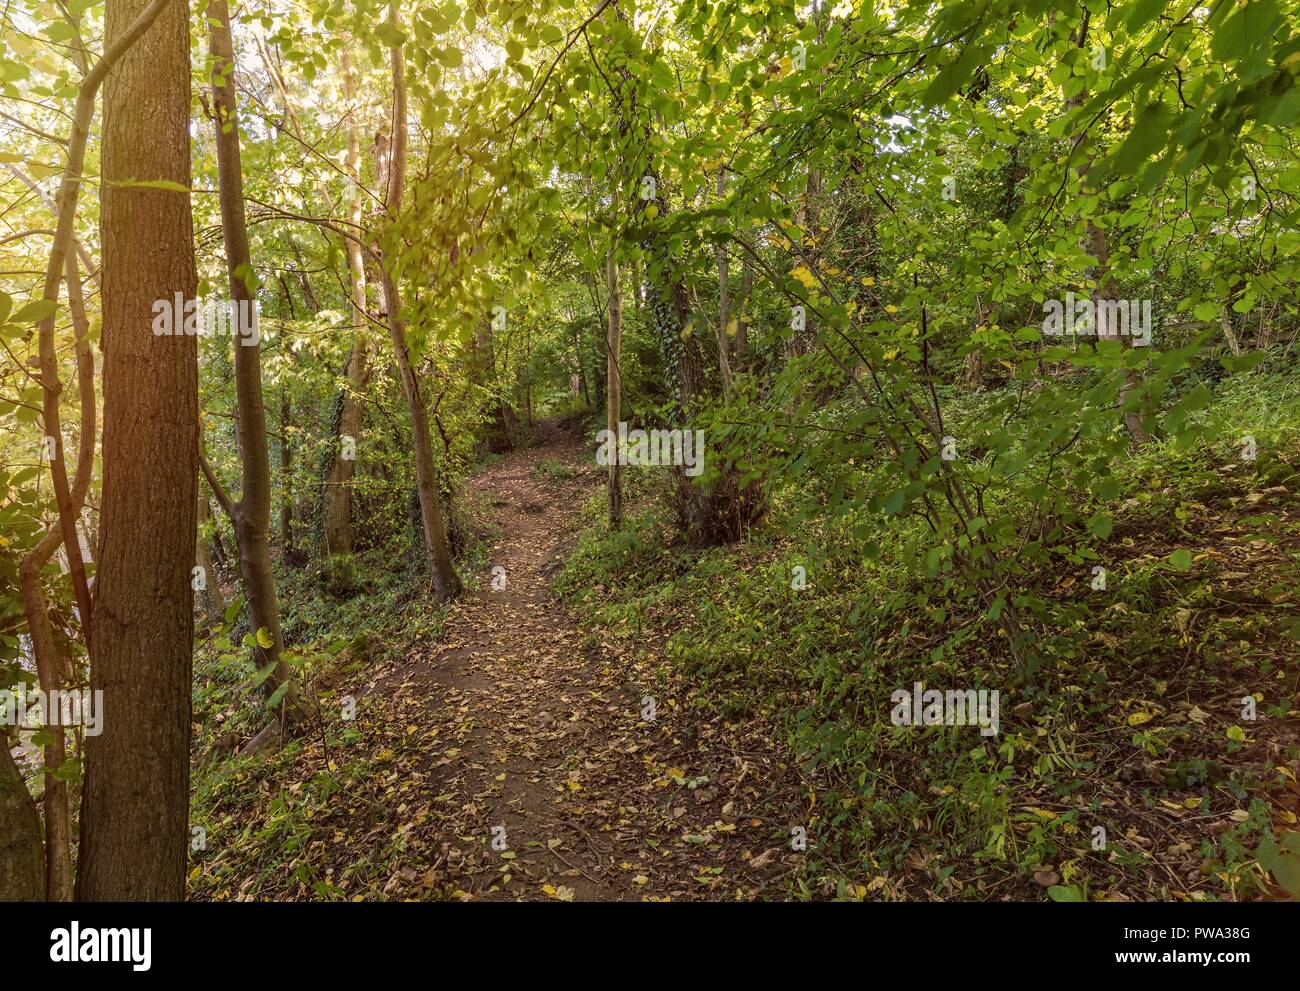 A path runs between some trees where the land slopes down to a river.  The leaves of early autumn have fallen on the path. Stock Photo